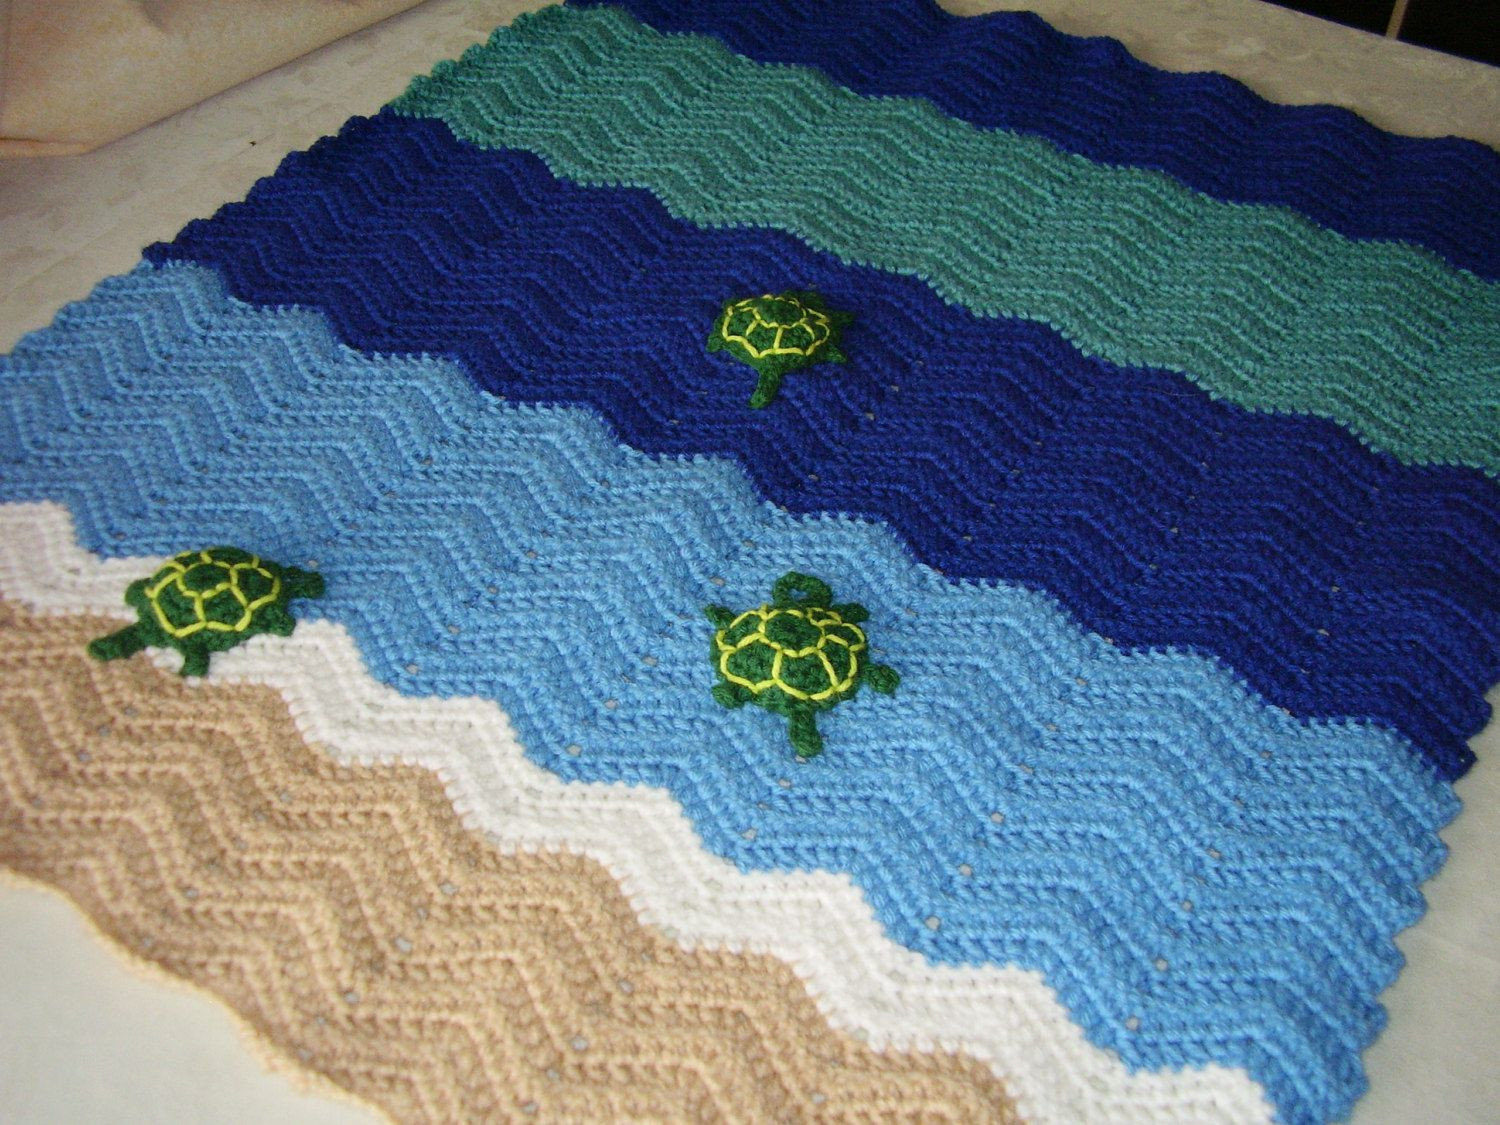 Awesome Crochet Ocean Waves Turtle Blanket In Sand Blues and Sea Turtle Crochet Blanket Pattern Of Beautiful Premier Sea Turtle Blanket Free Download – Premier Yarns Sea Turtle Crochet Blanket Pattern